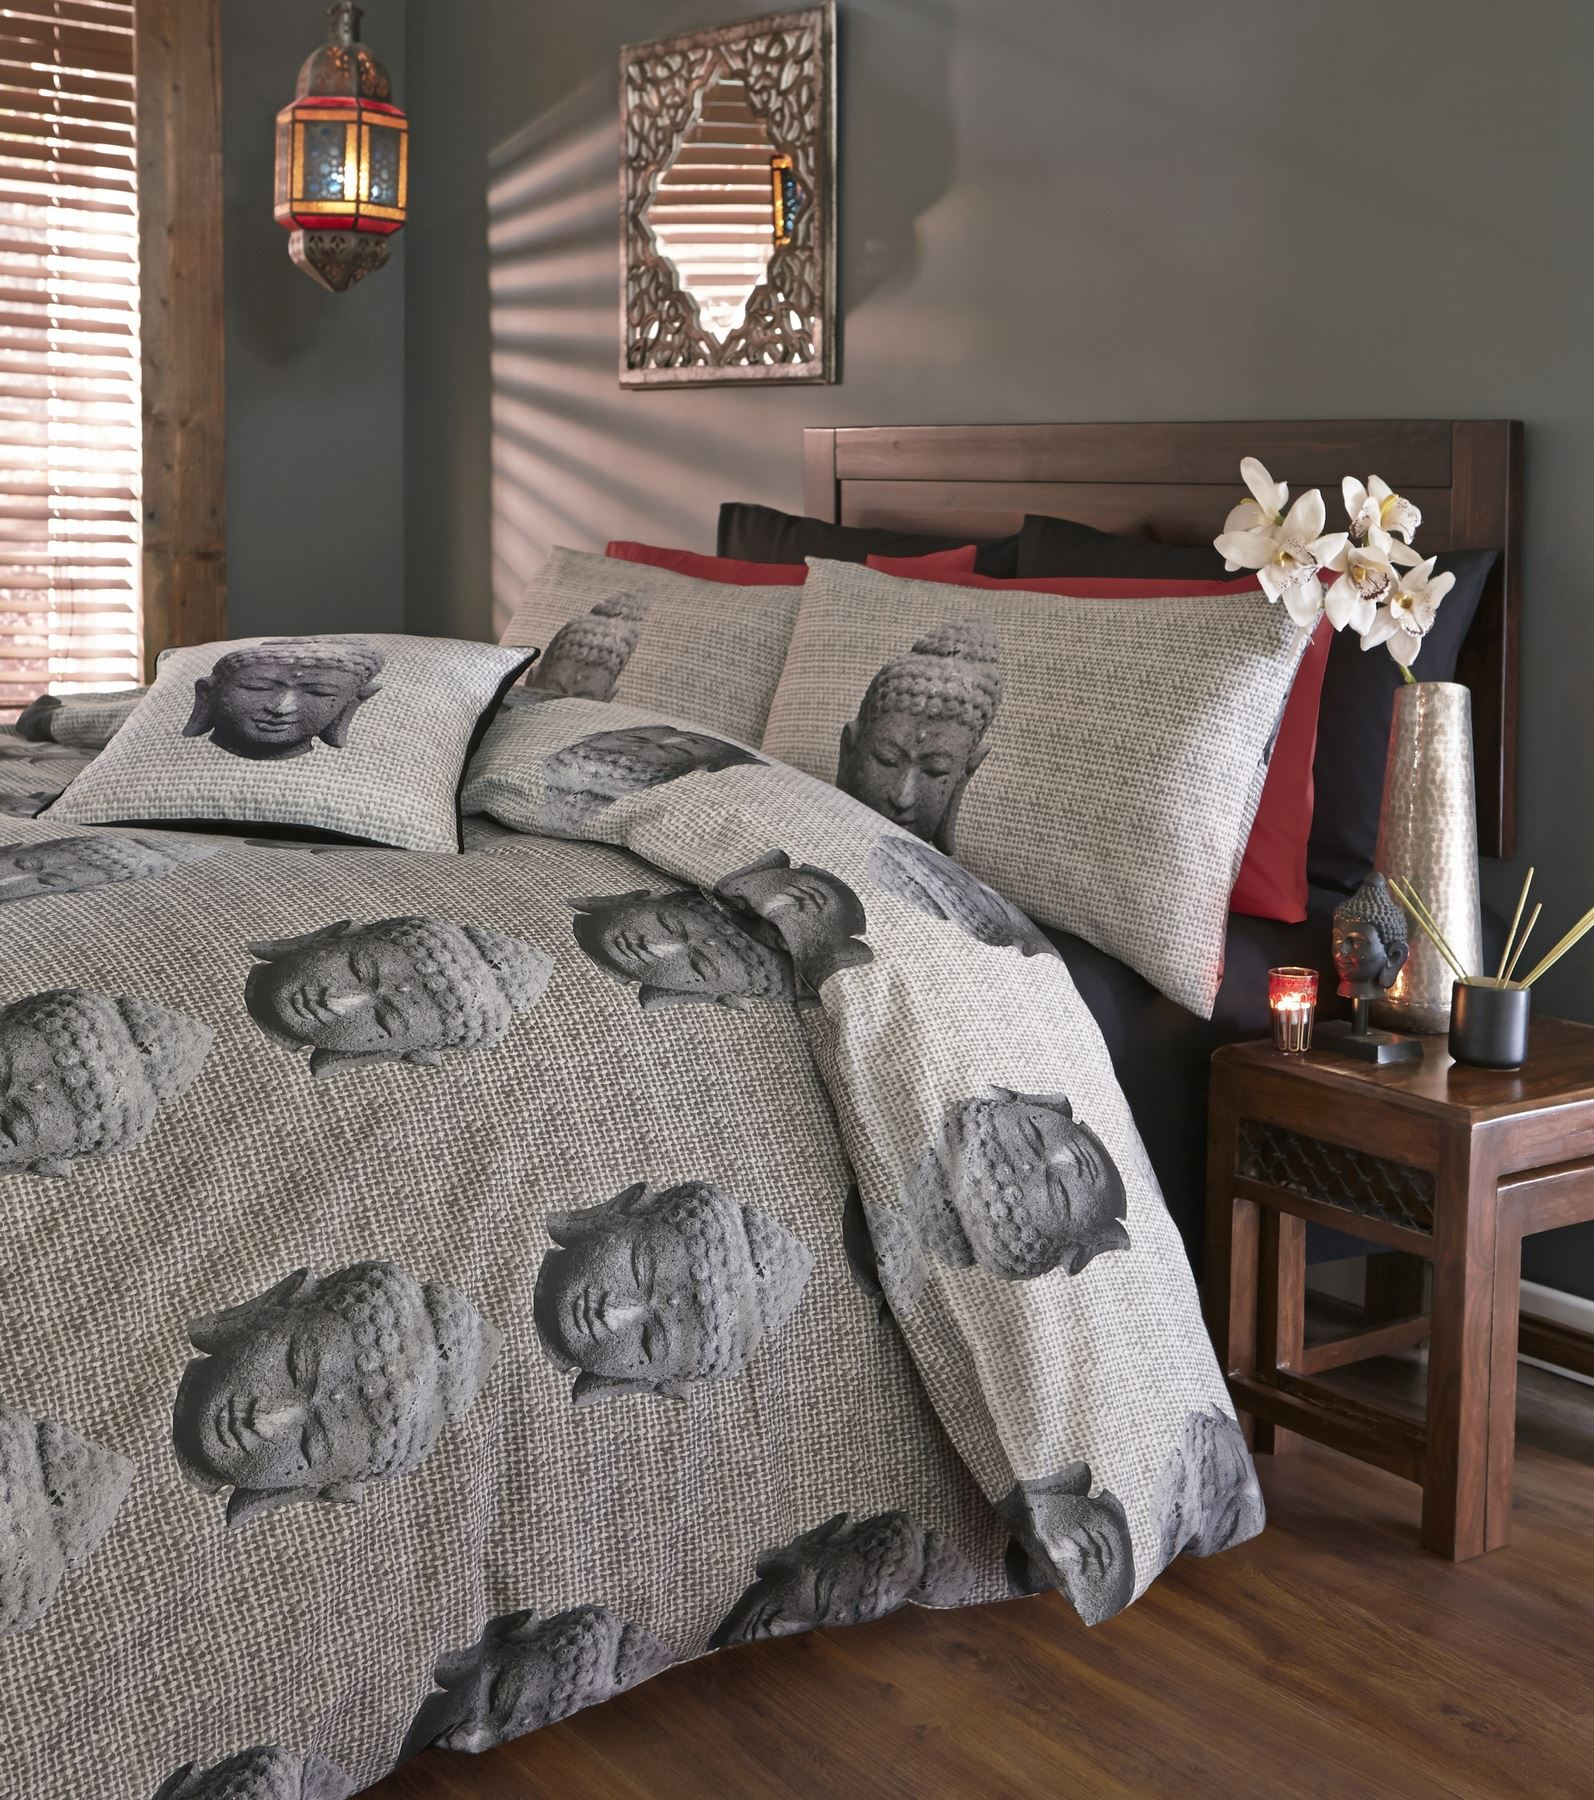 Buddha Themed Bedroom. Buddhist Home Decor Most favored Home Design